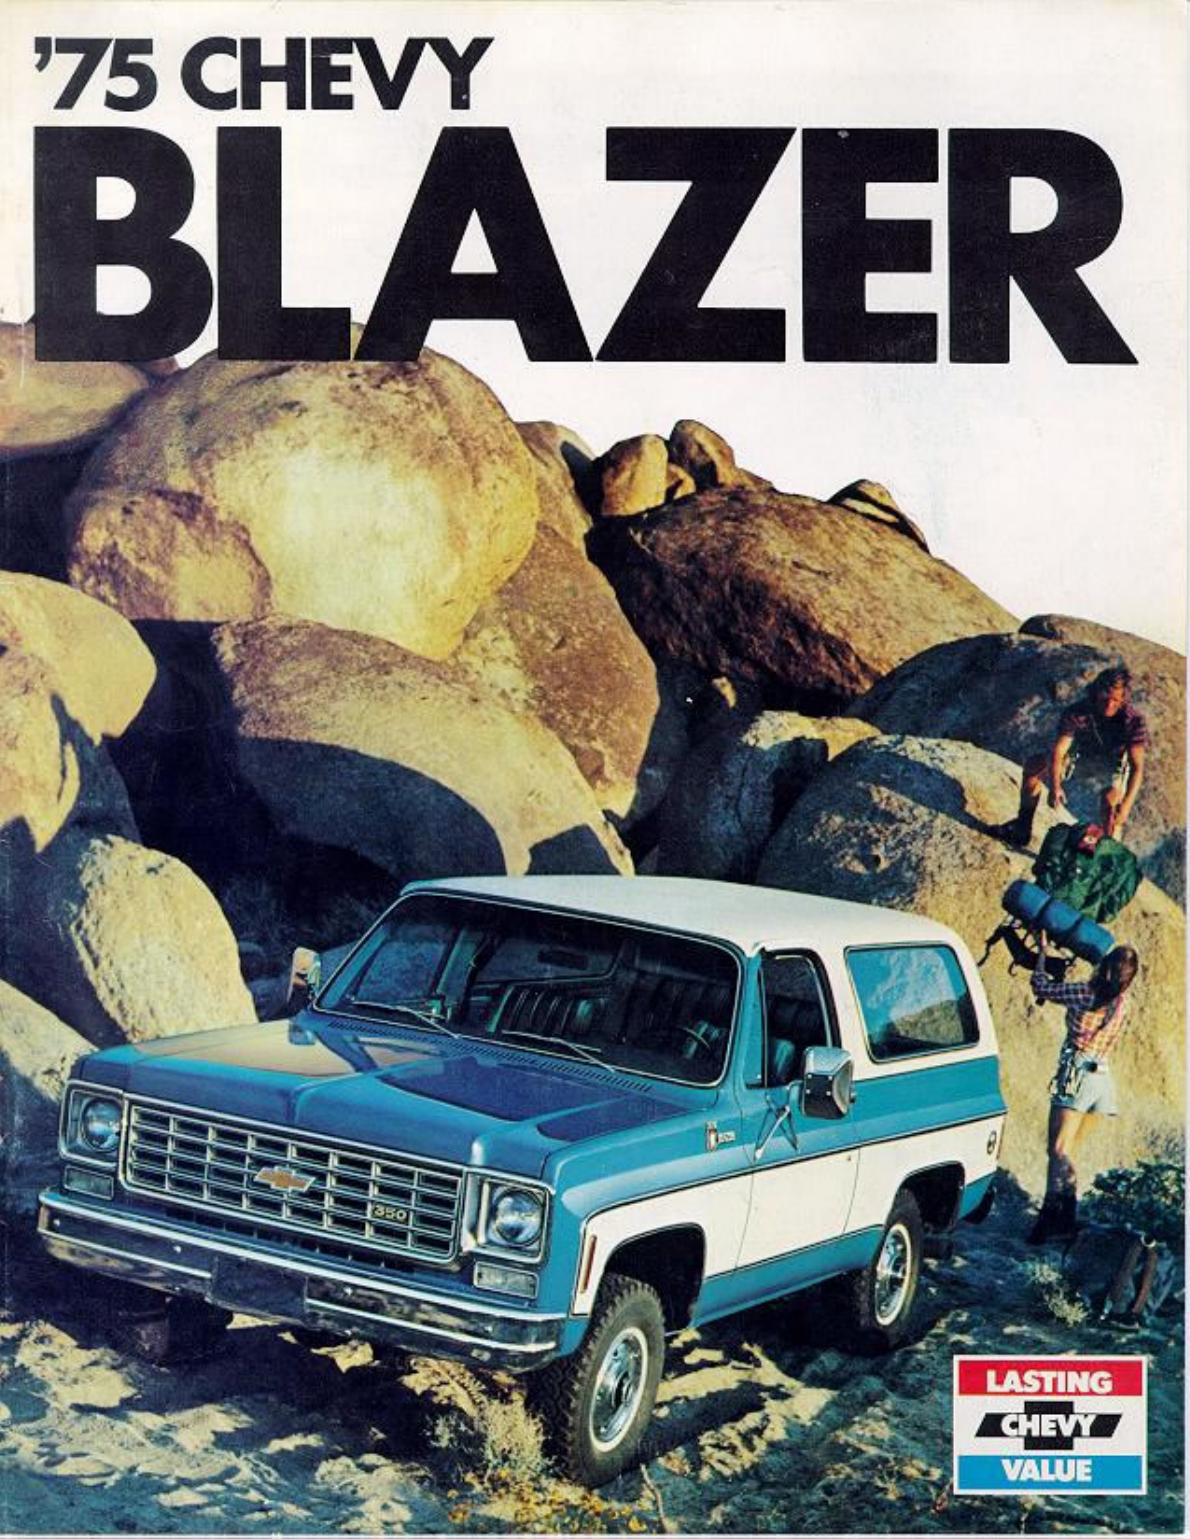 See our other Chevrolet Blazer Manuals: